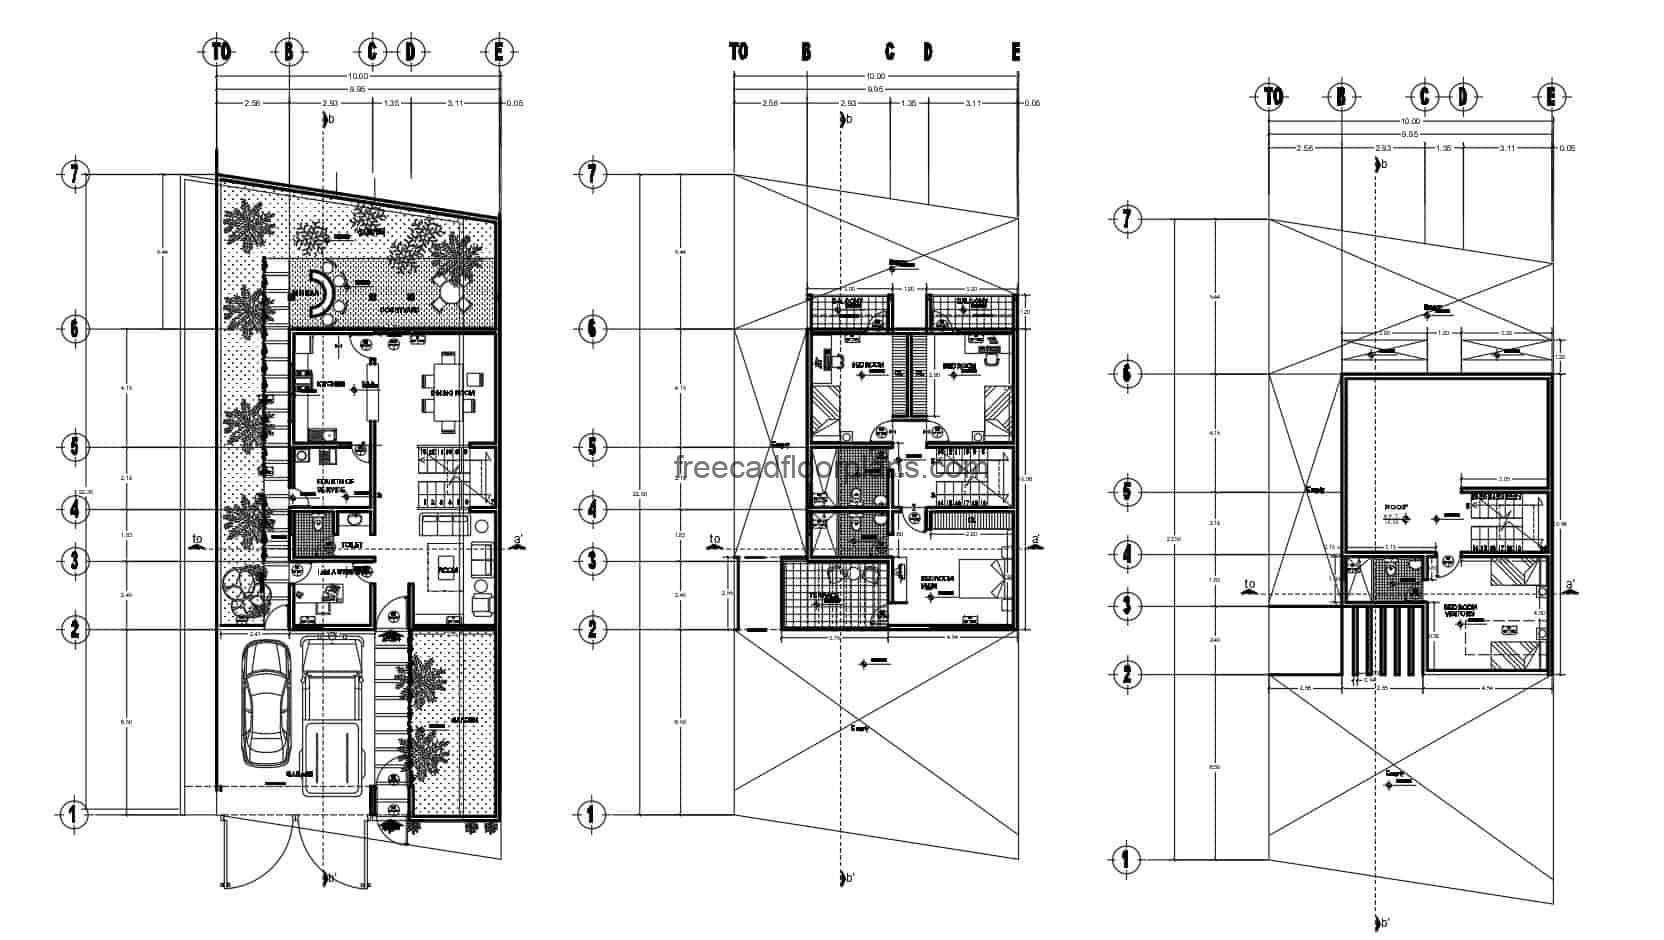 Complete plans developed in Autocad DWG format of simple house of three levels with four rooms in total. First level social area with living room, kitchen, dining room, laundry area and half bathroom, patio with minibar, second level three bedrooms each with balcony and two bathrooms and third level another bedroom with bathroom. 2D blueprints for free download.